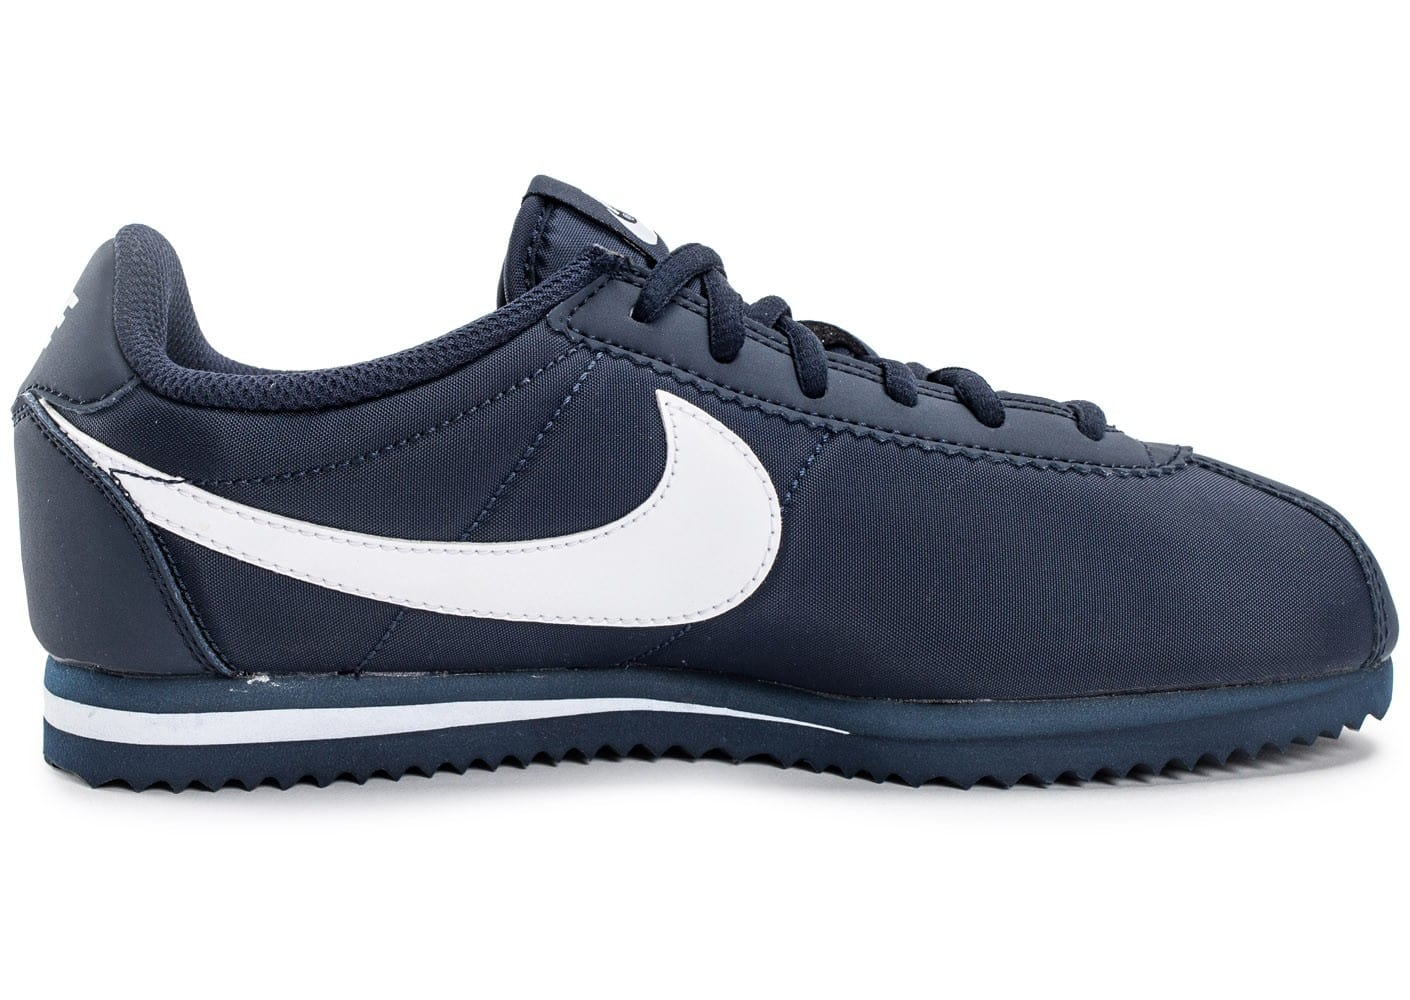 nike cortez nylon junior bleu marine chaussures enfant chausport. Black Bedroom Furniture Sets. Home Design Ideas